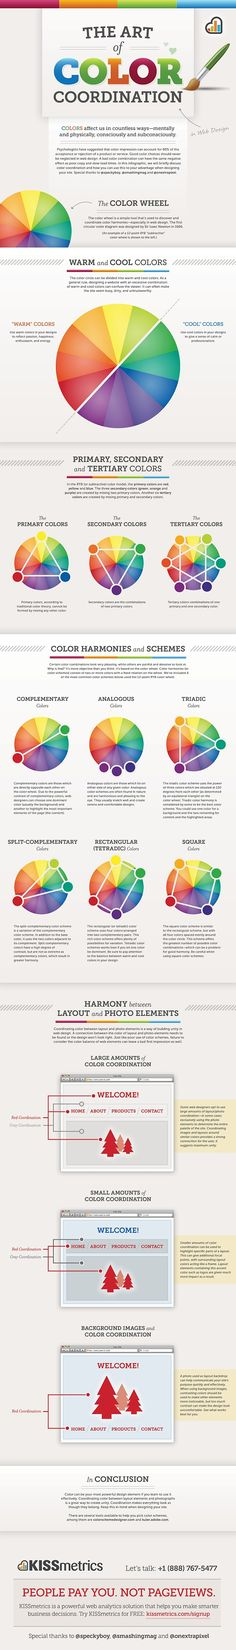 Colour coordination cheat-sheet. Every man should learn and live this.